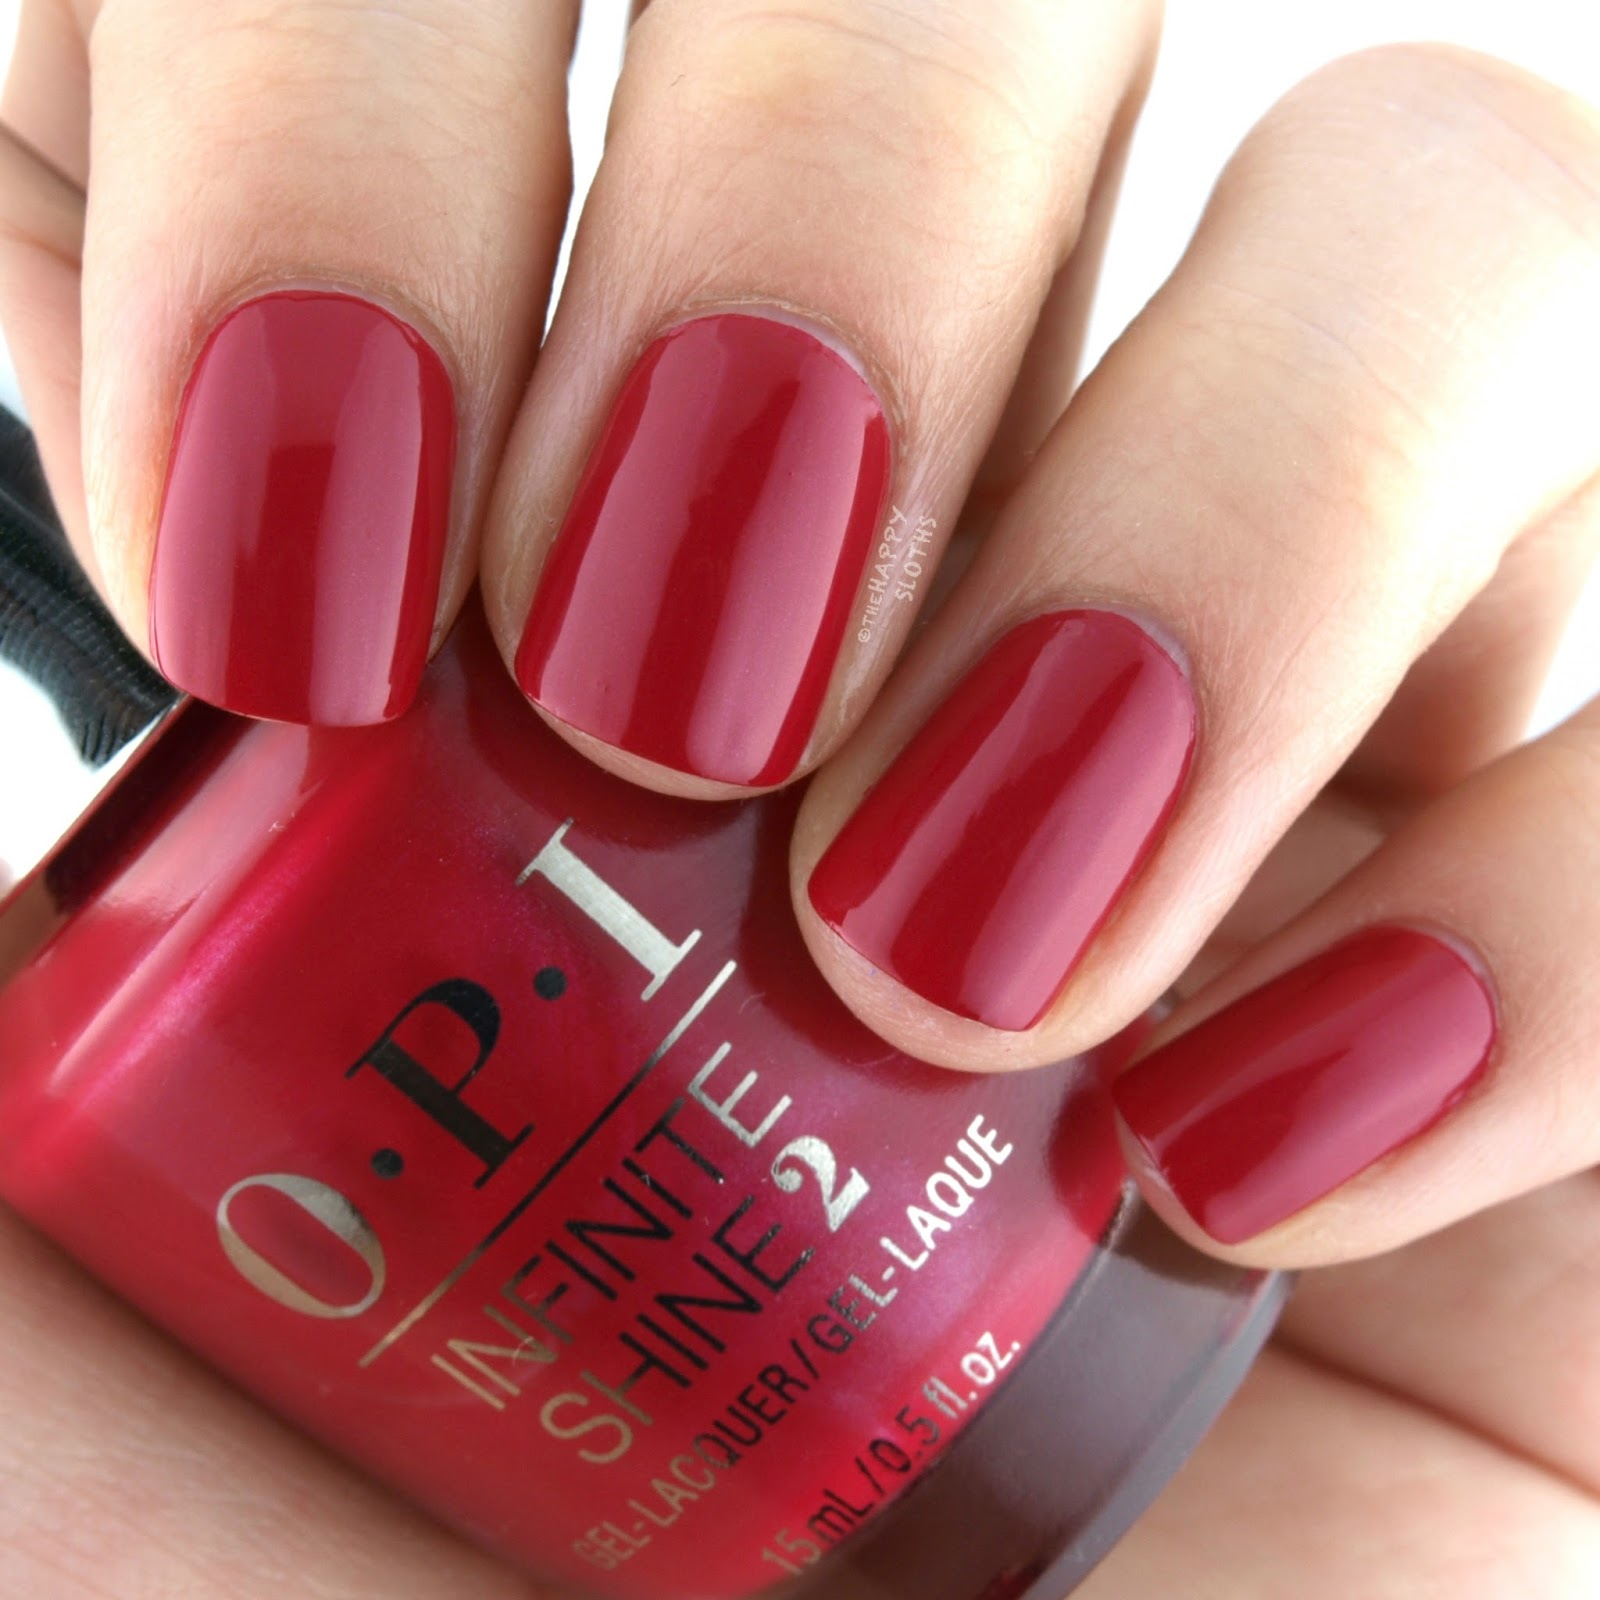 OPI Infinite Shine OPI Red Swatches Review